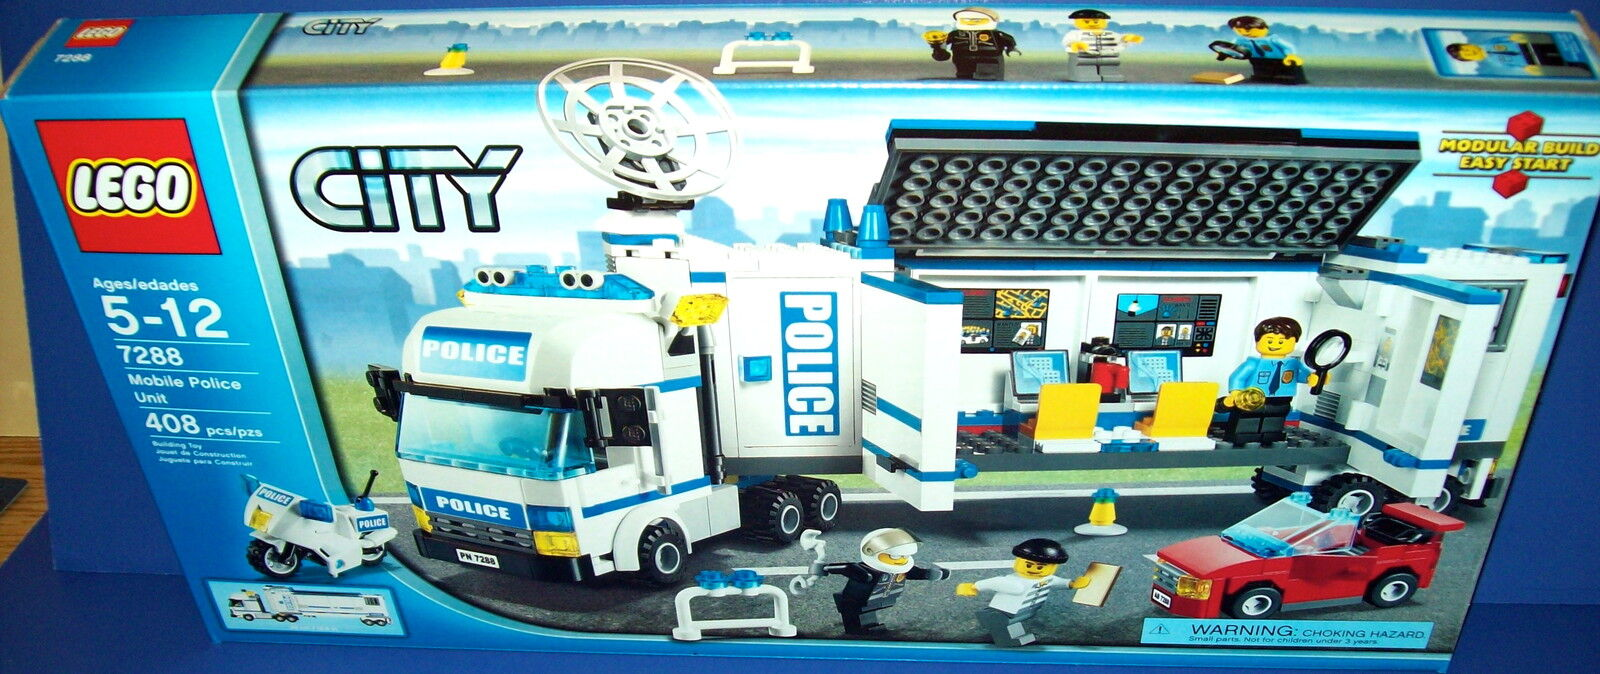 LEGO 7288 - MOBILE POLICE UNIT city lego RETIrosso new sealed